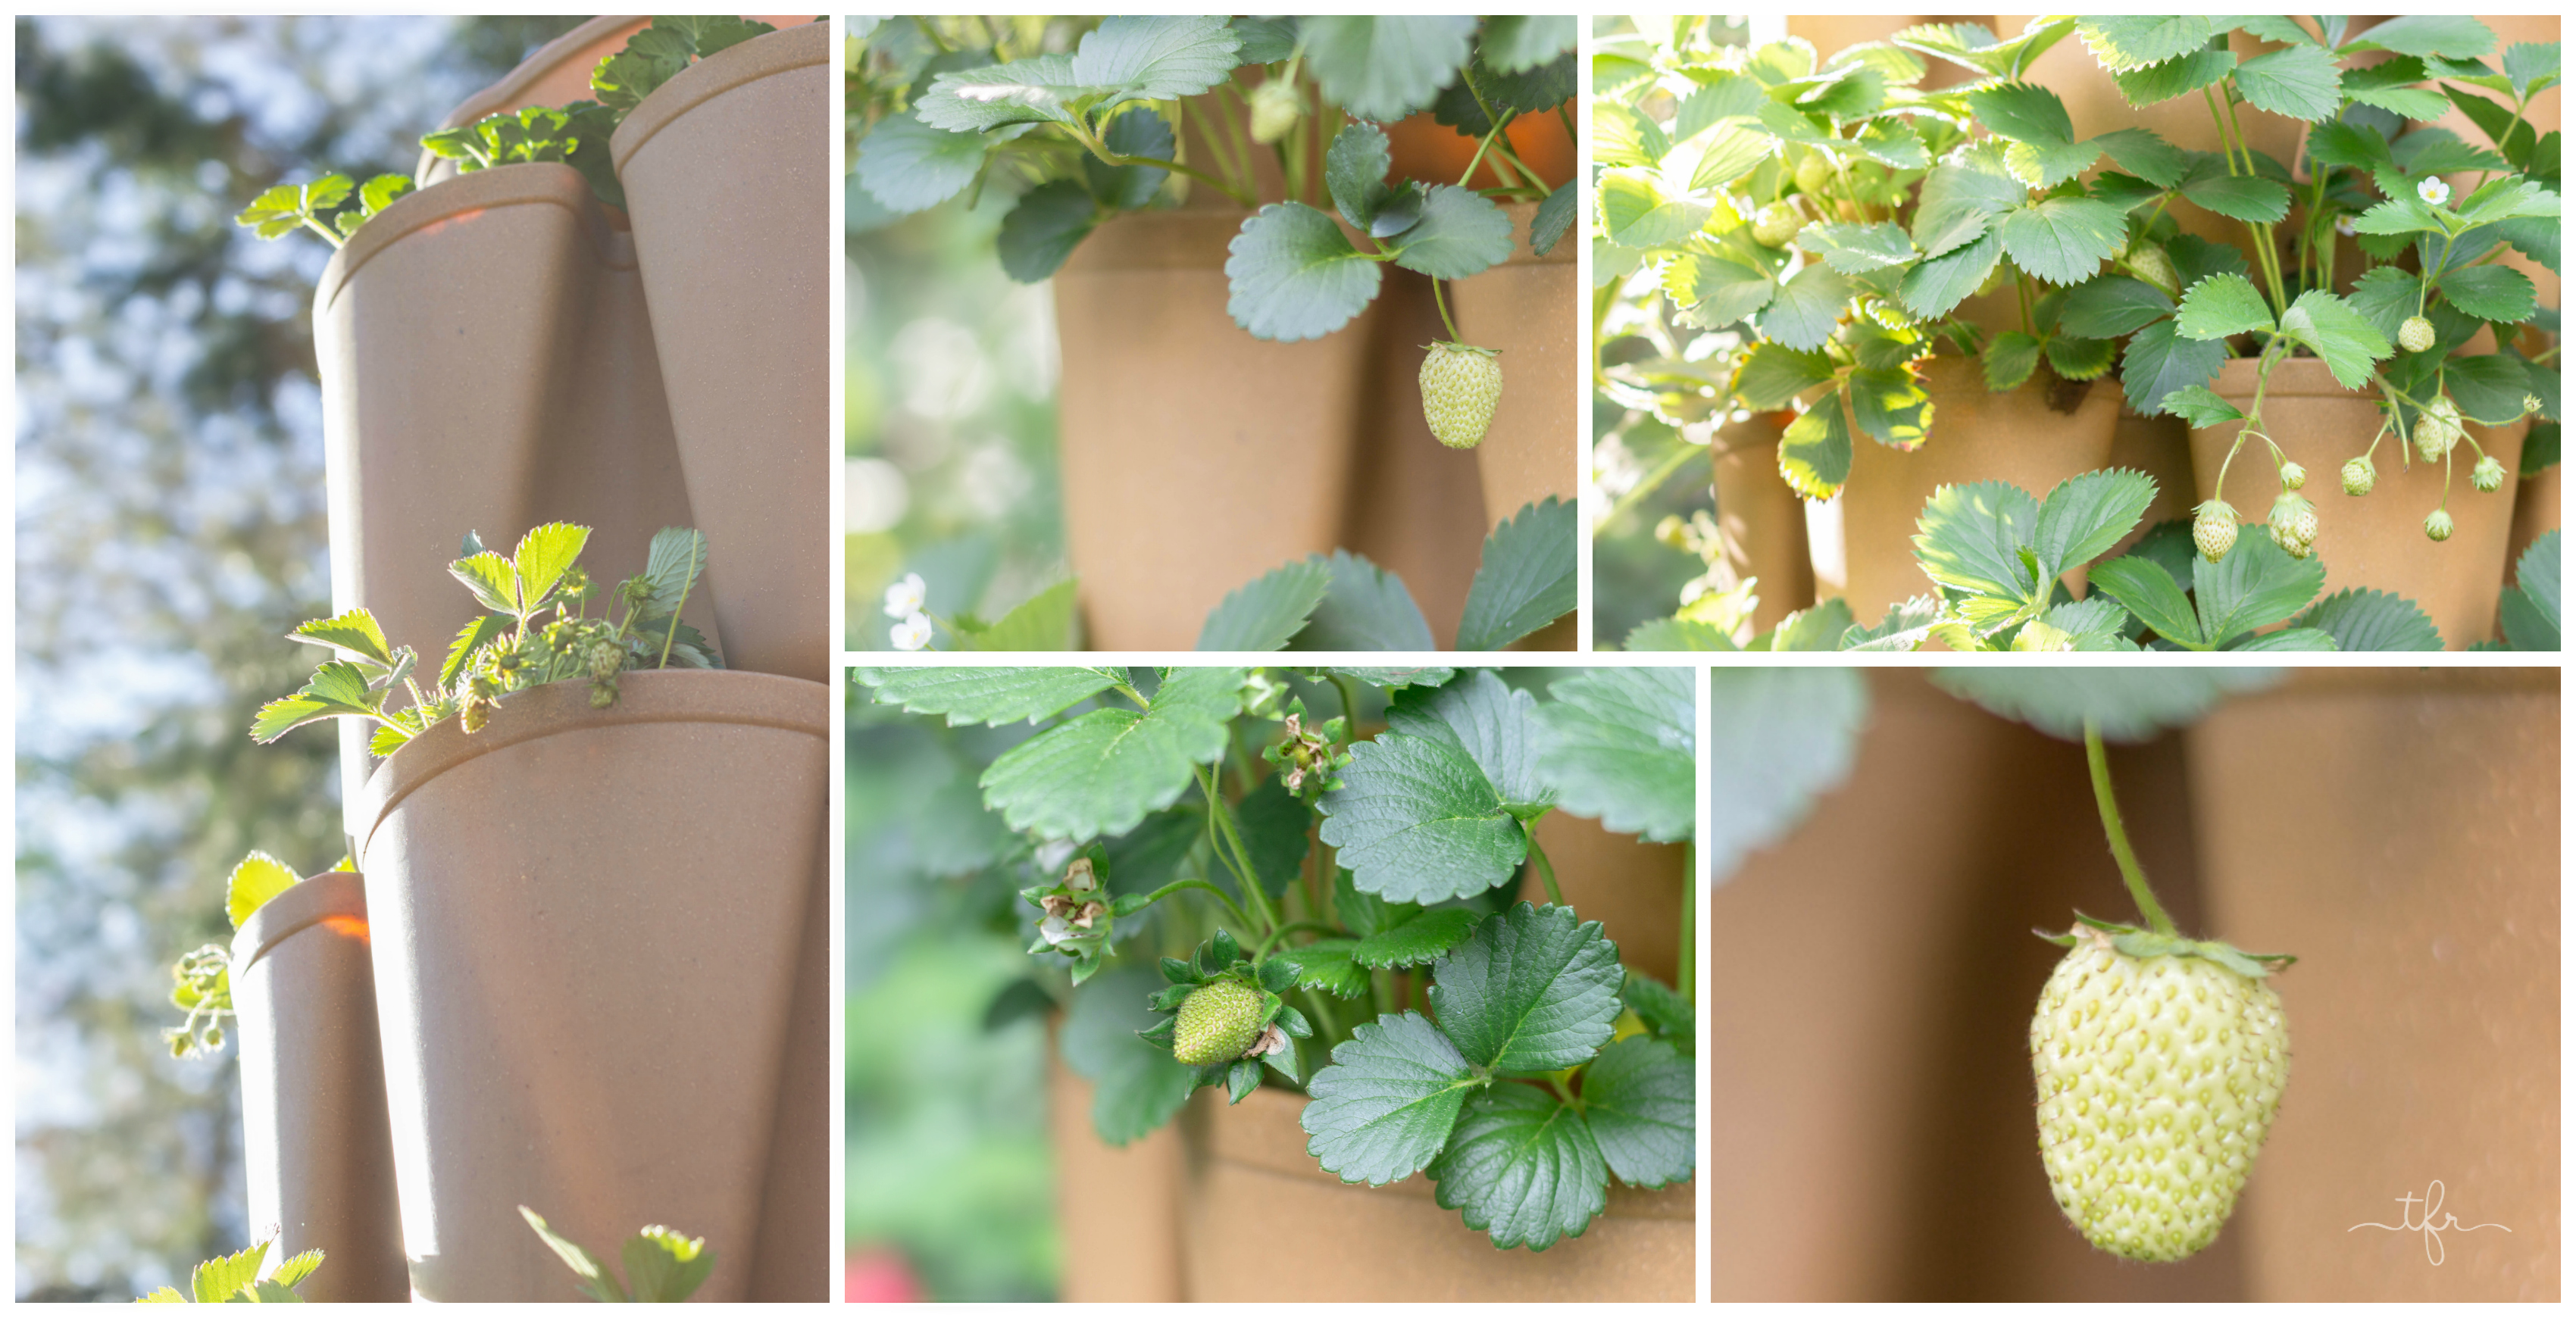 Strawberries growing in my GreenStalk Garden last year. A Simple Guide to Growing Strawberries | angiethefreckledrose.com